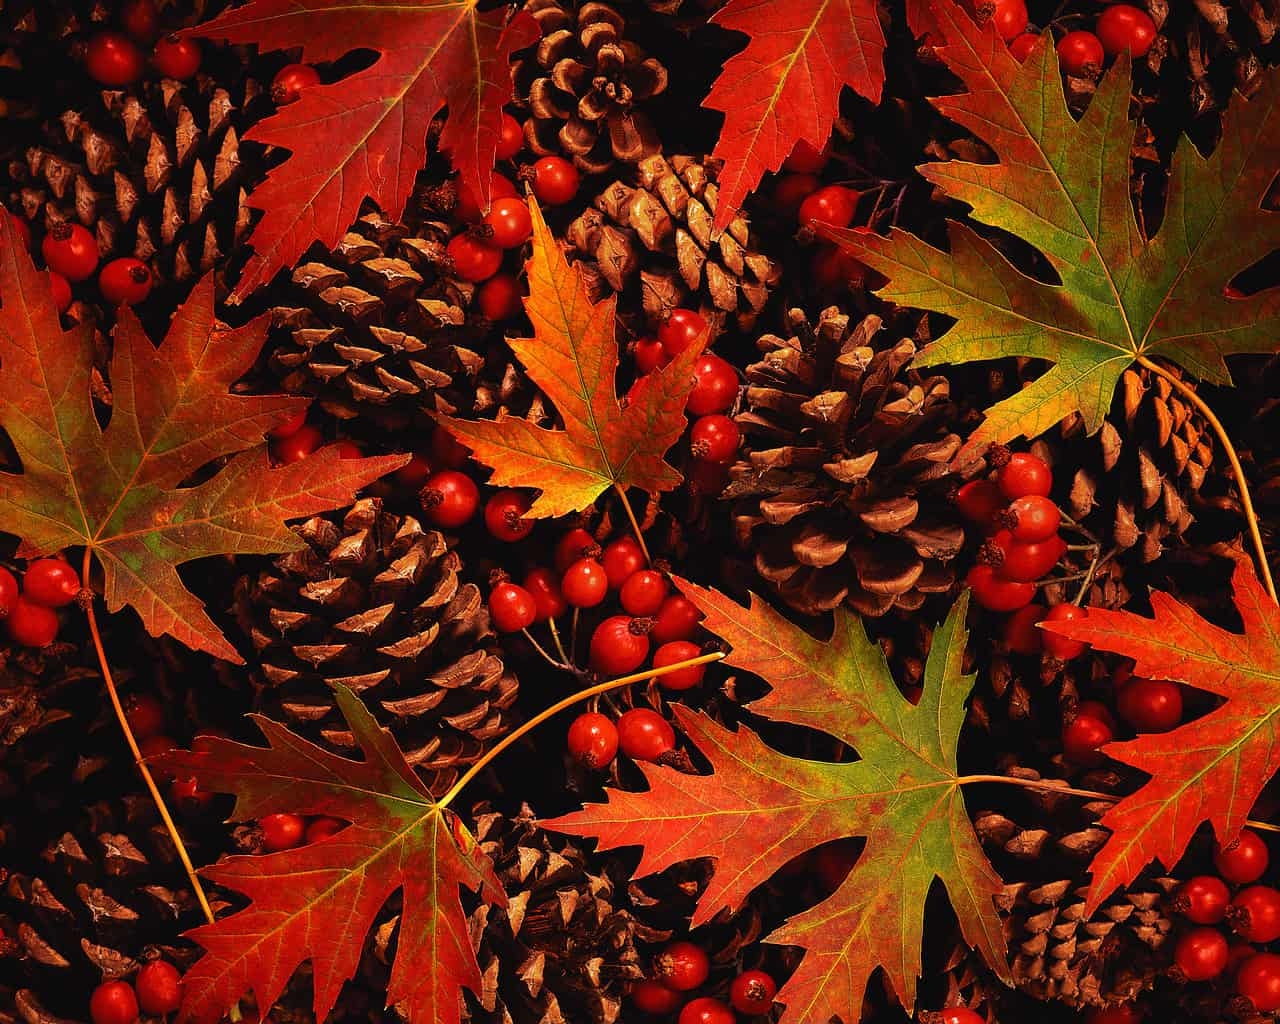 Autumn Leaves, Berries and Pinecones